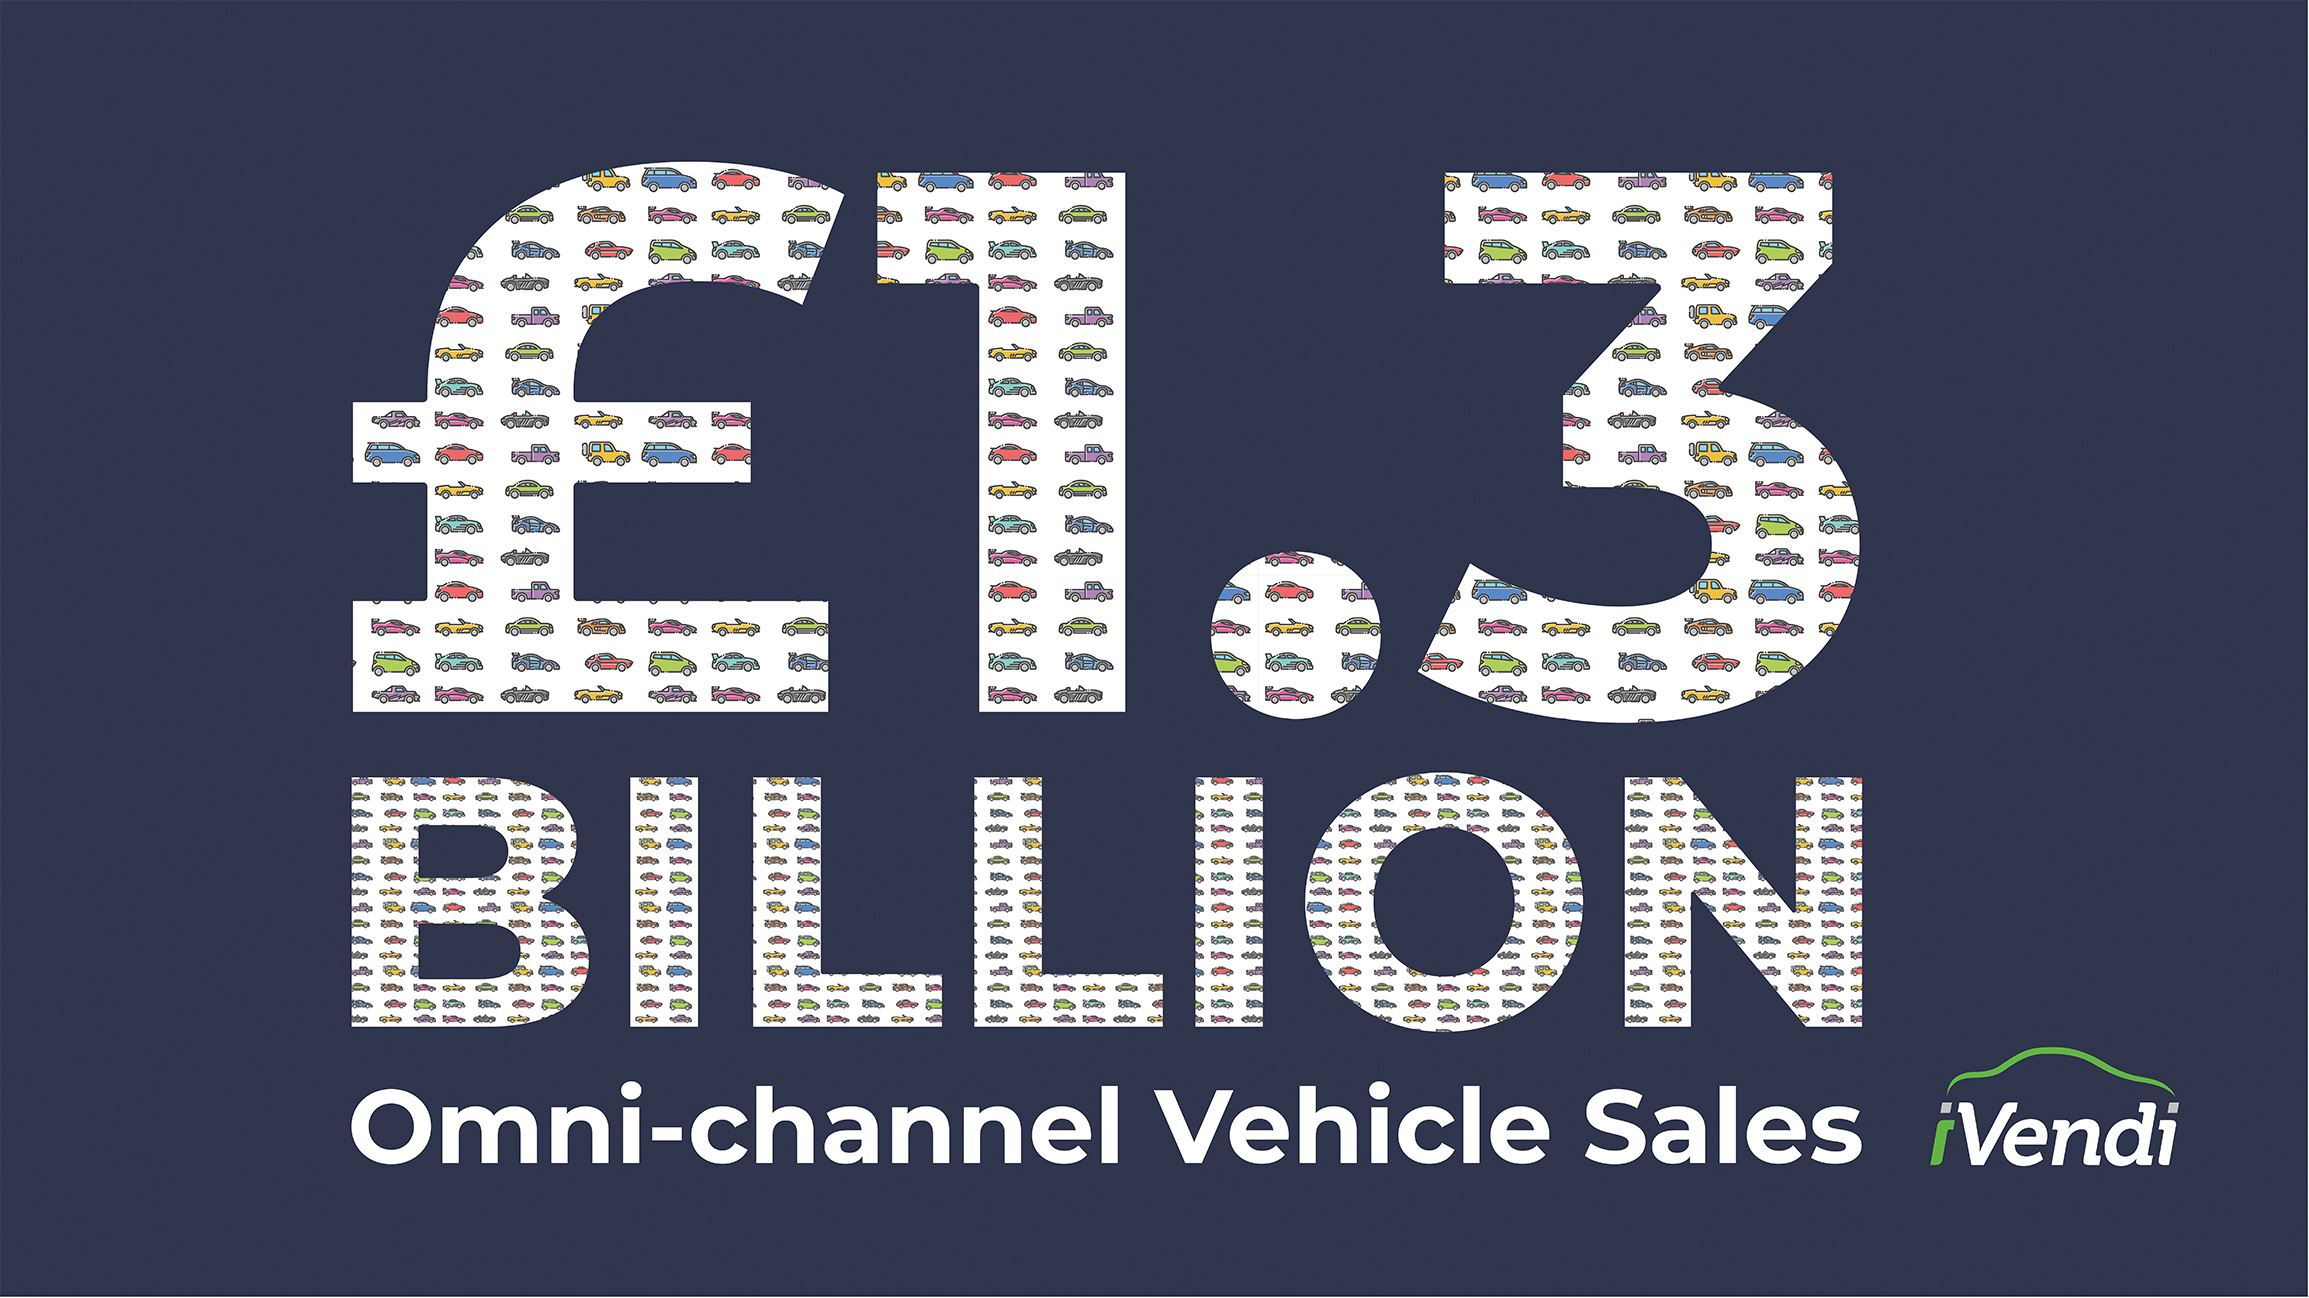 £1.3bn used vehicle sales through iVendi platform in pandemic year is up £200m on previous 12 months